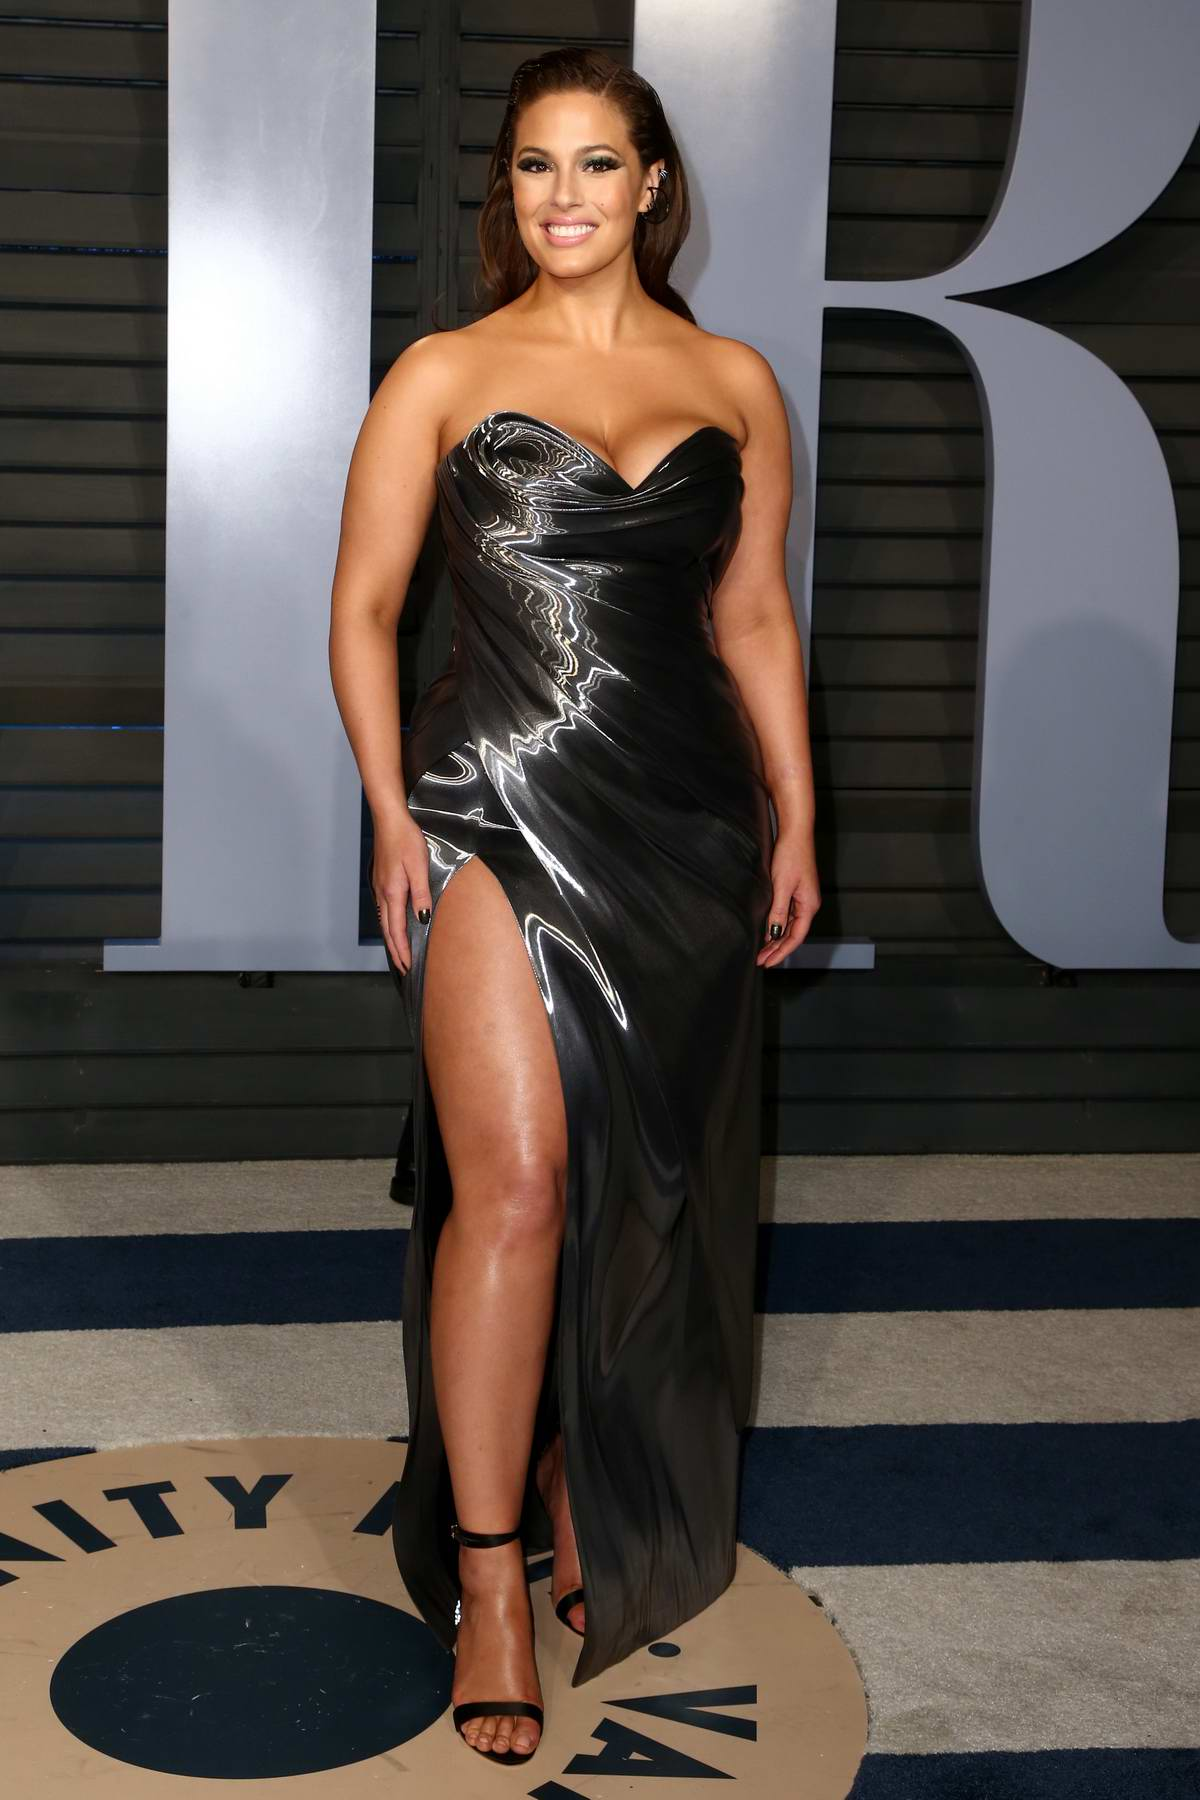 Ashley Graham attends 2018 Vanity Fair Oscar Party at the Wallis Annenberg Center for the Performing Arts in Beverly Hills, Los Angeles